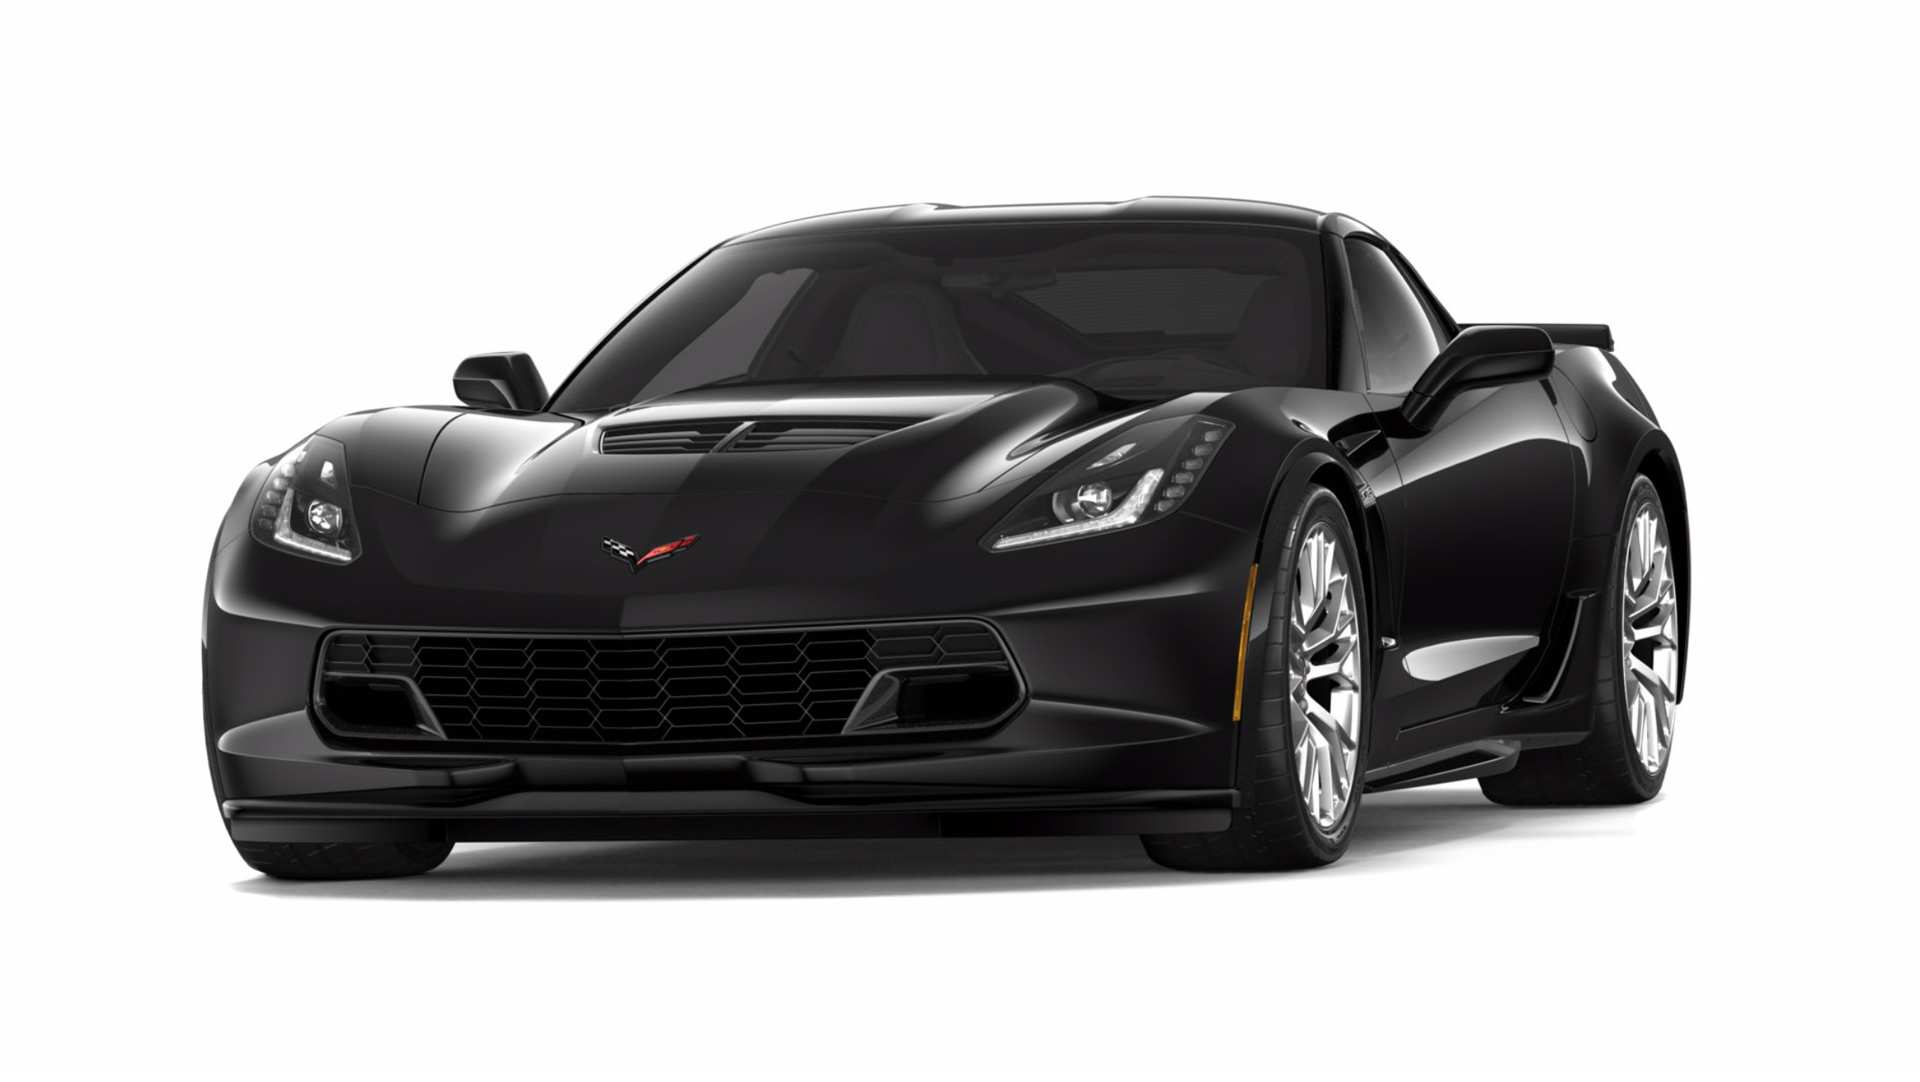 83 All New 2020 Chevrolet Corvette Zo6 Exterior